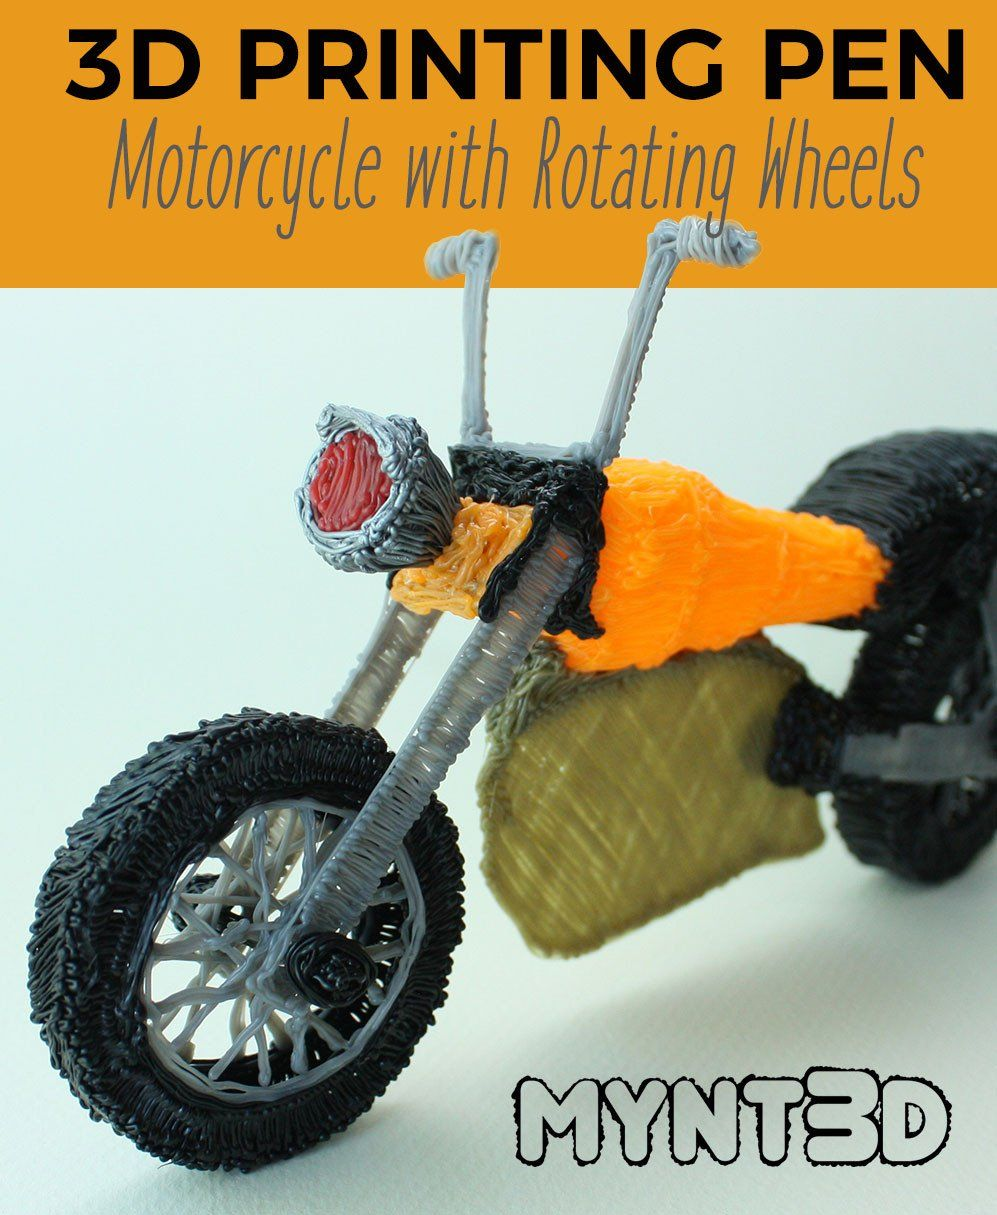 How to Make a Motorcycle with a 3D Printing Pen 3d